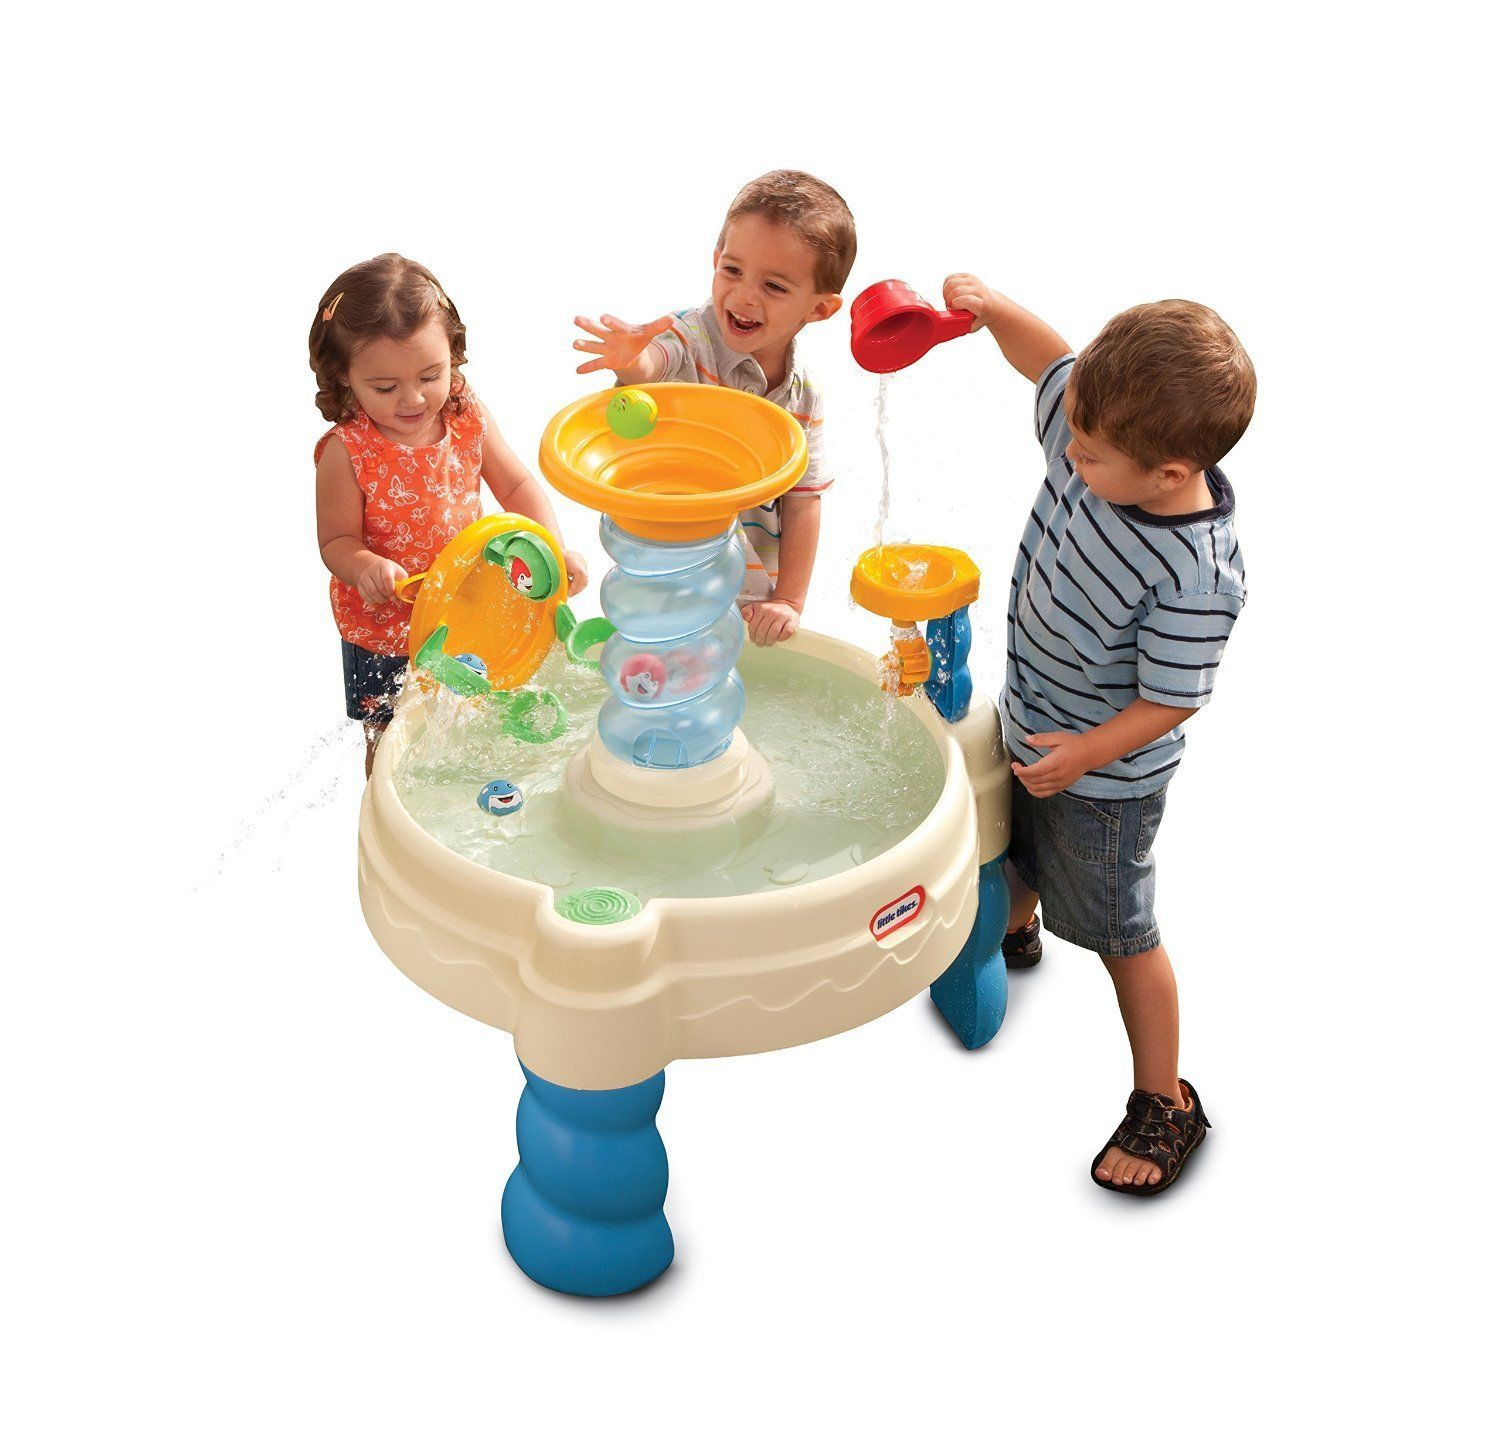 Outside Toys For Day Care : Kids water table squirting balls cup funnel outdoor play